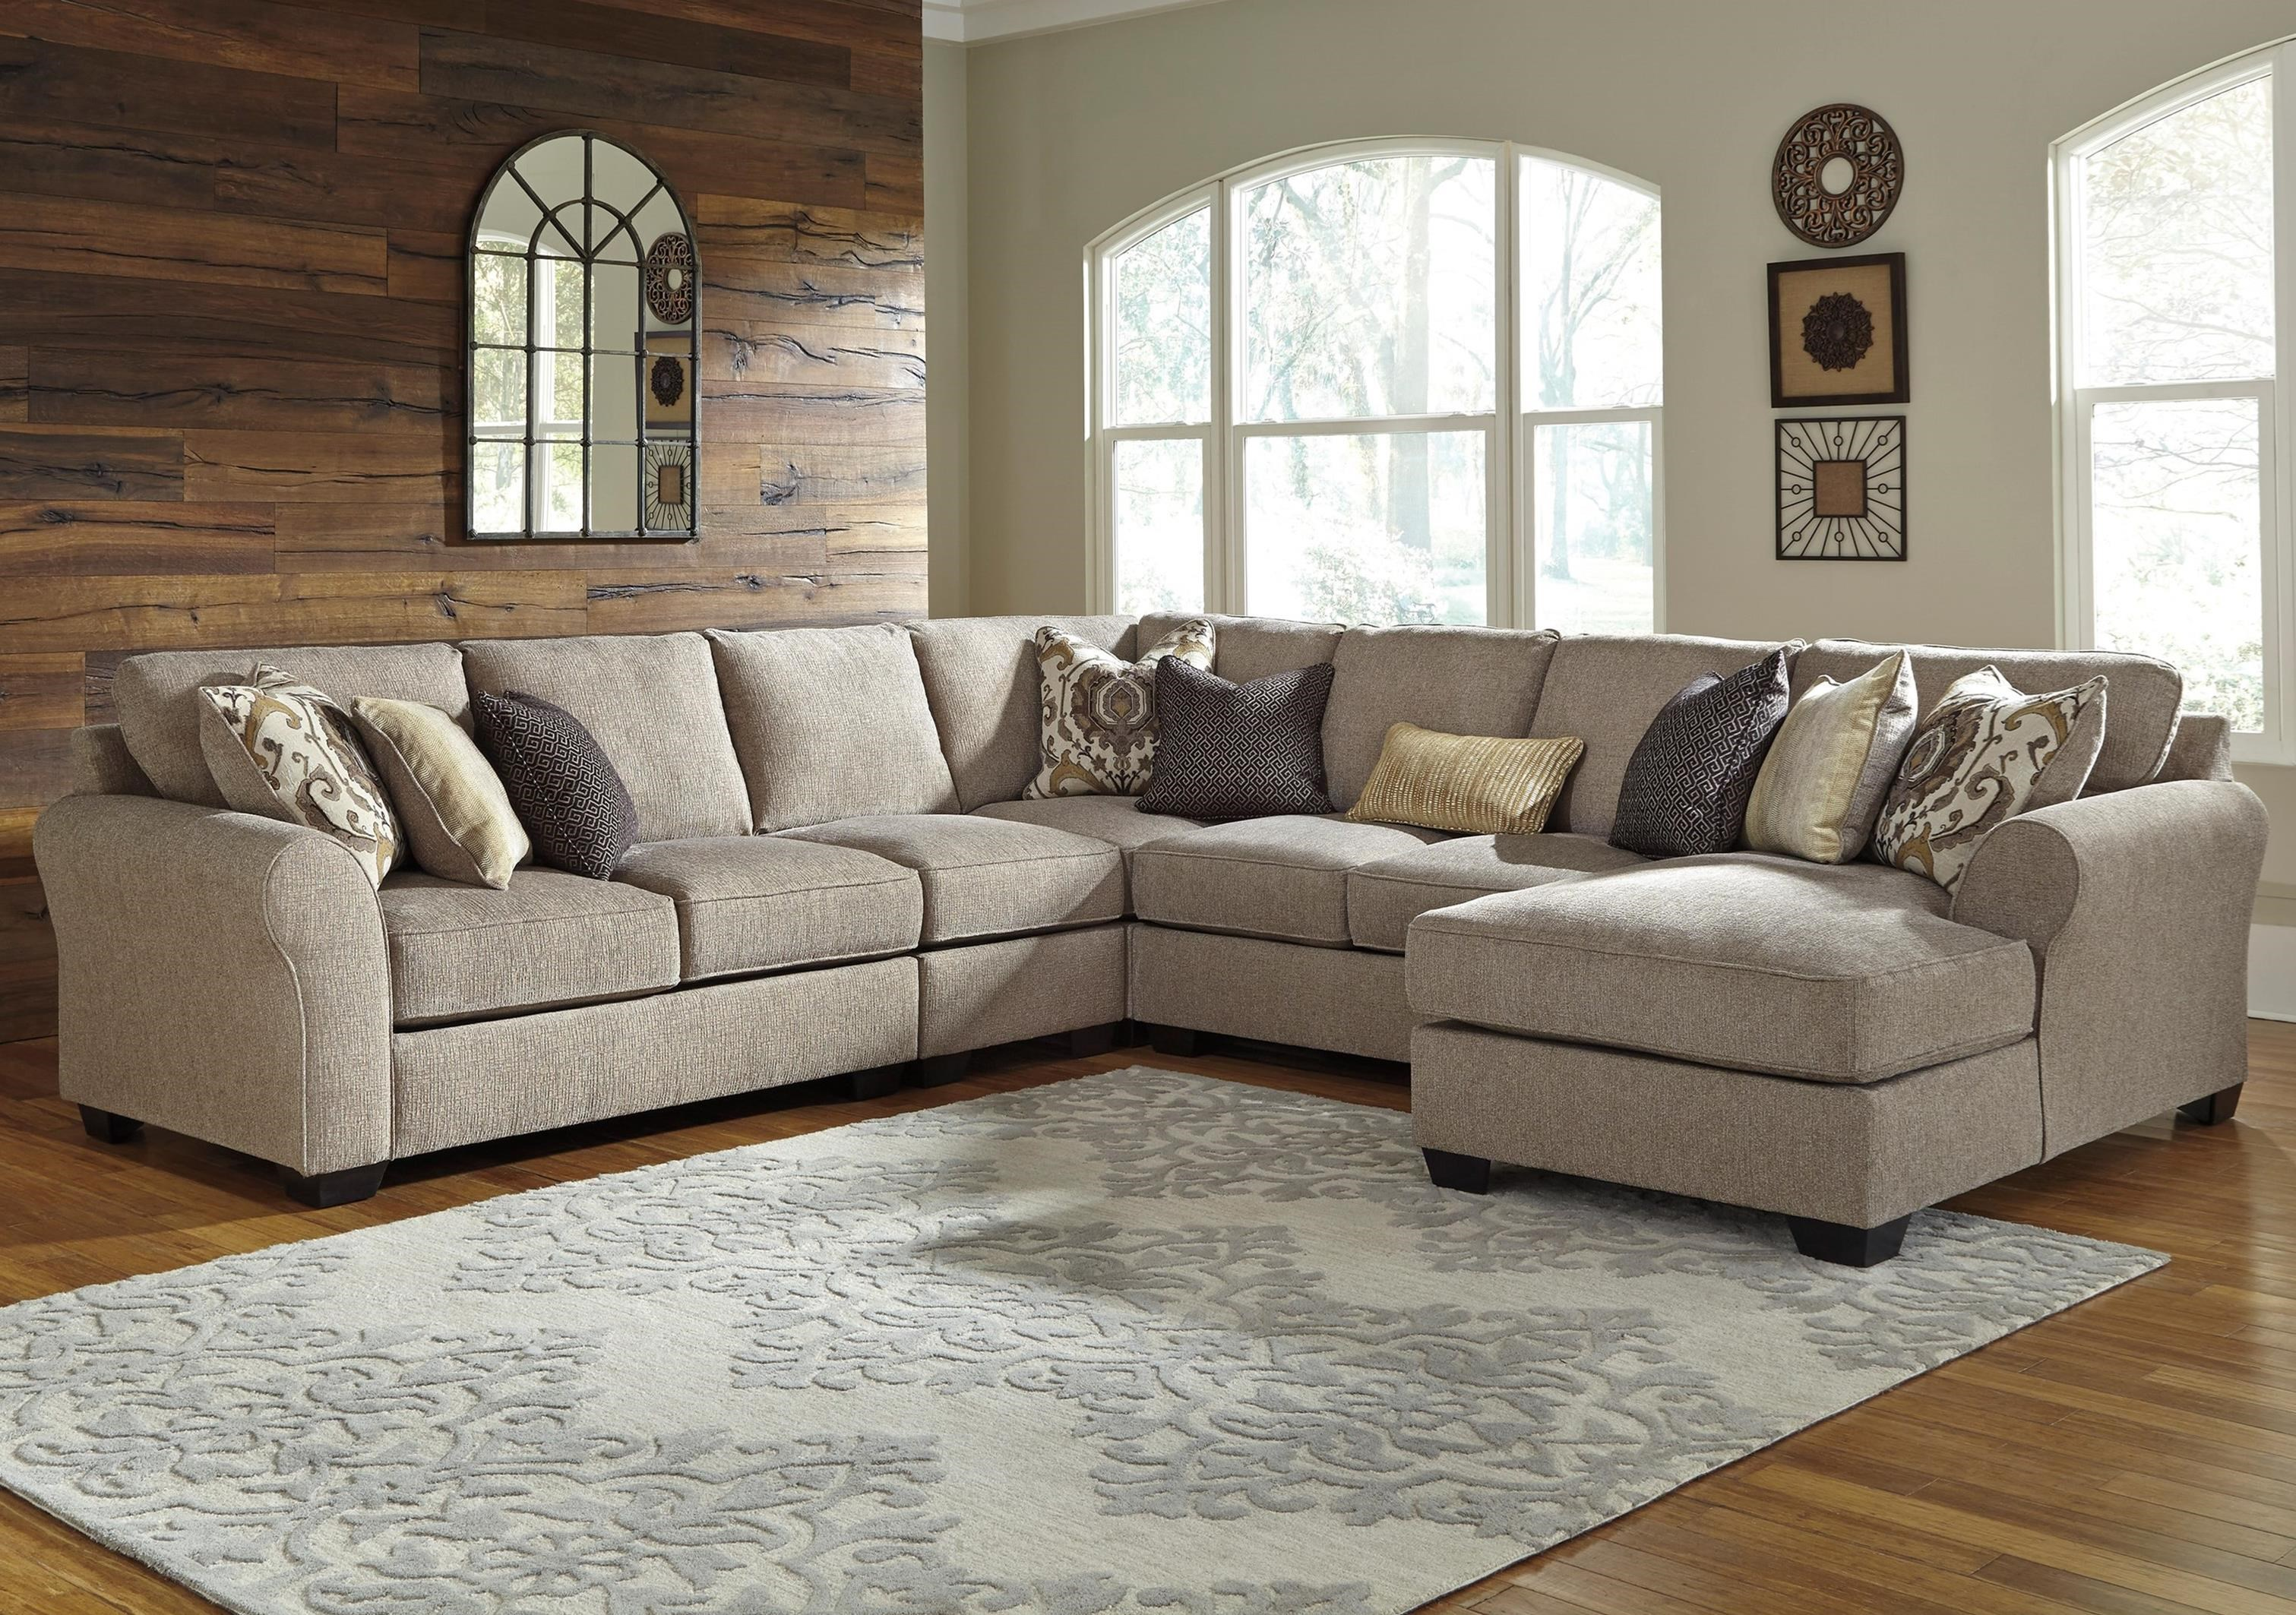 Benchcraft Pantomine 5-Piece Sectional with Right Chaise | Boulevard